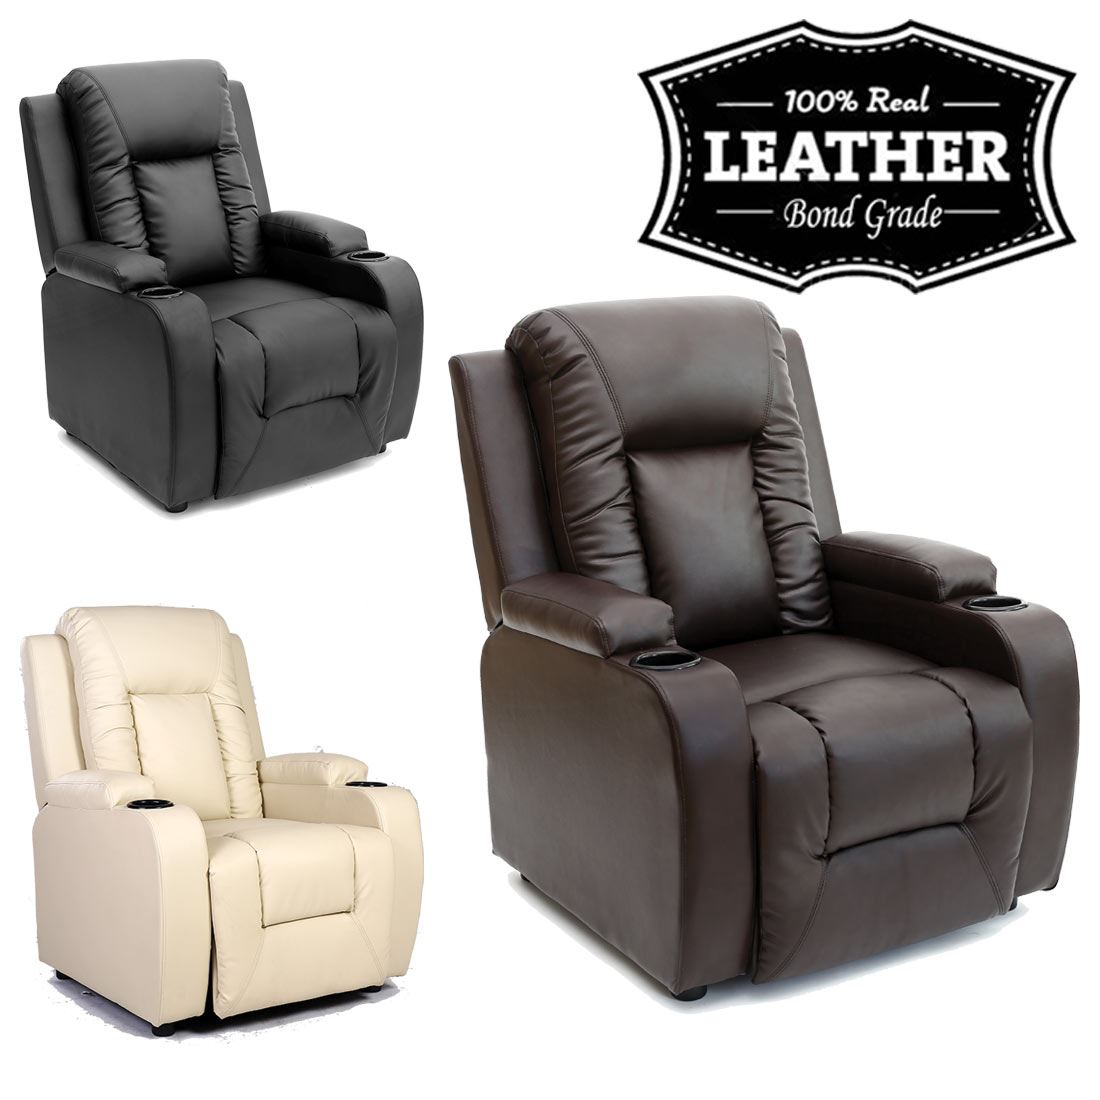 Oscar Leather Recliner W Drink Holders Armchair Sofa Chair Reclining Cinema Ebay